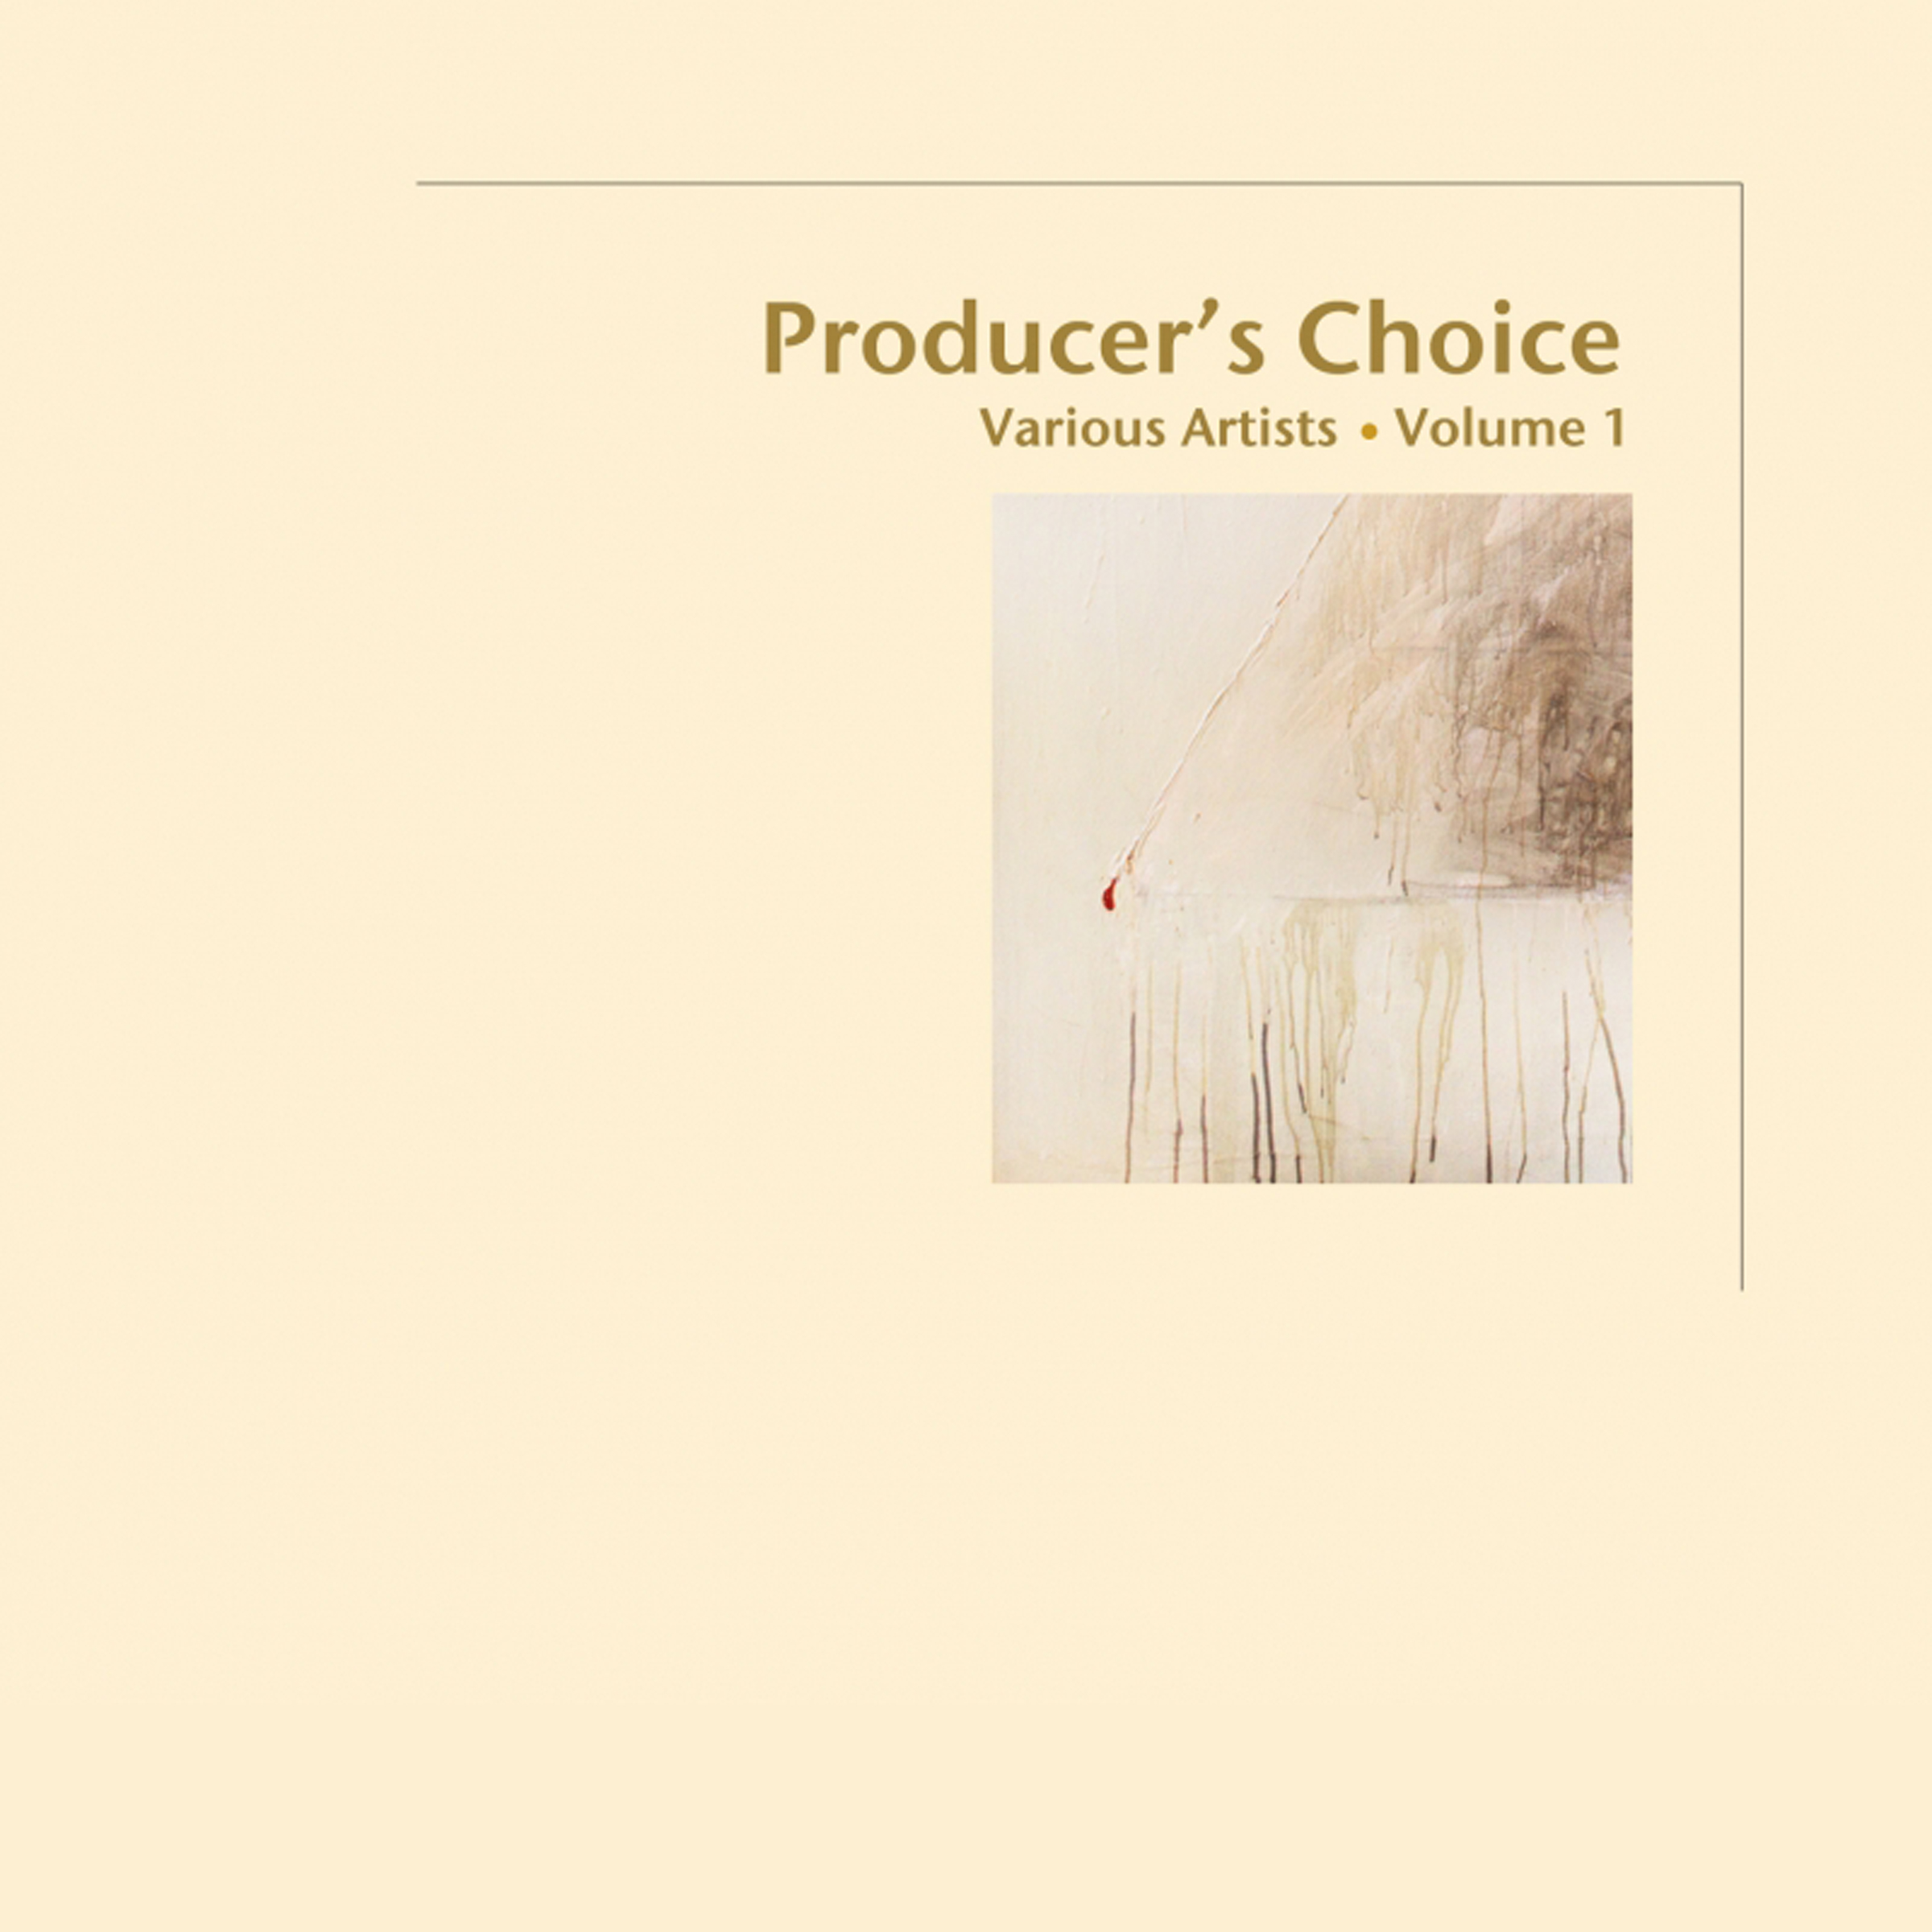 Blue Coast Records - Producer's Choice Volume 1 - Cover Image